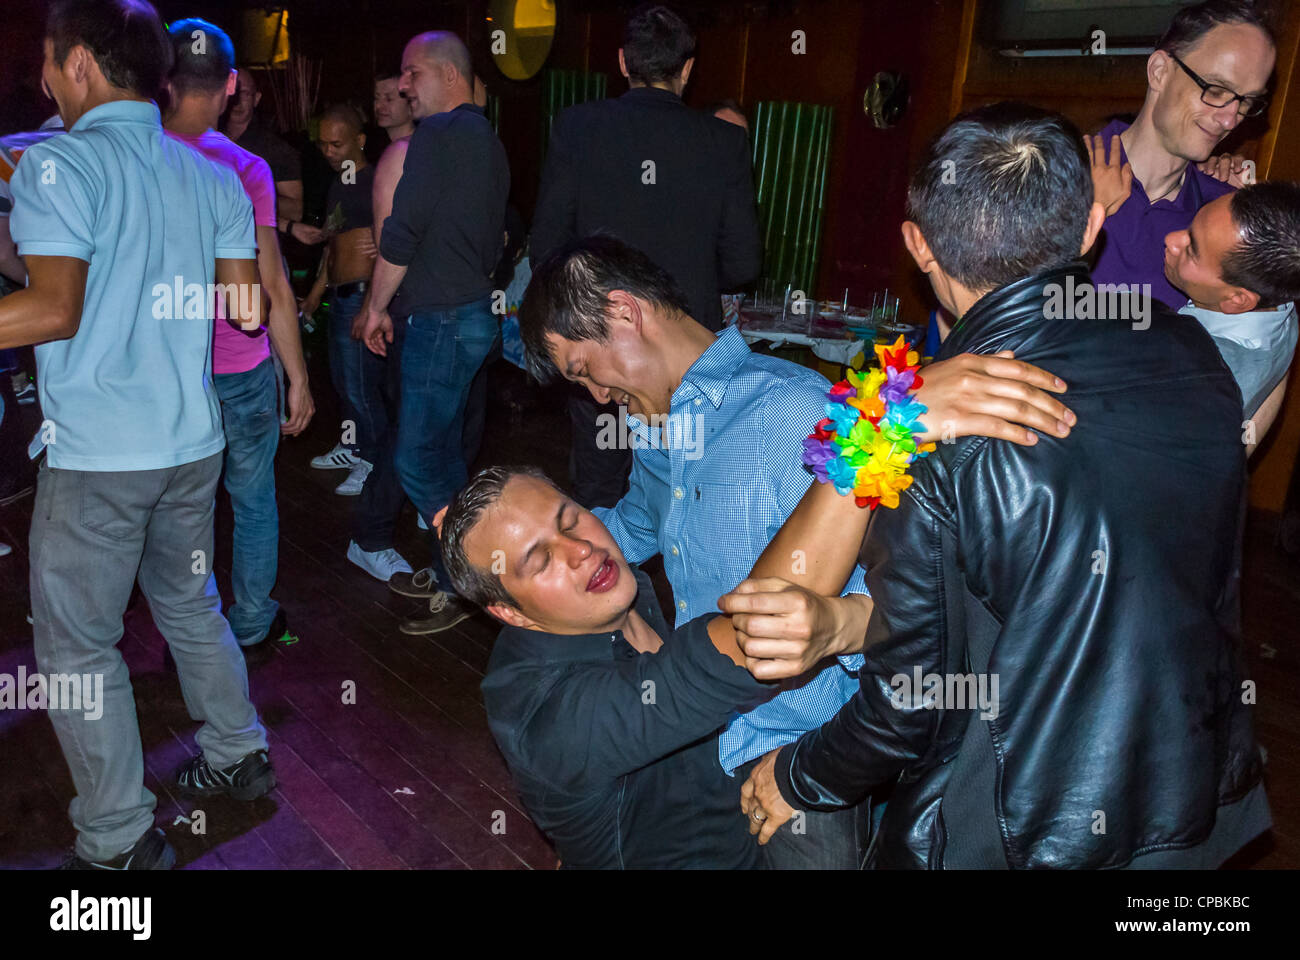 The club gay men